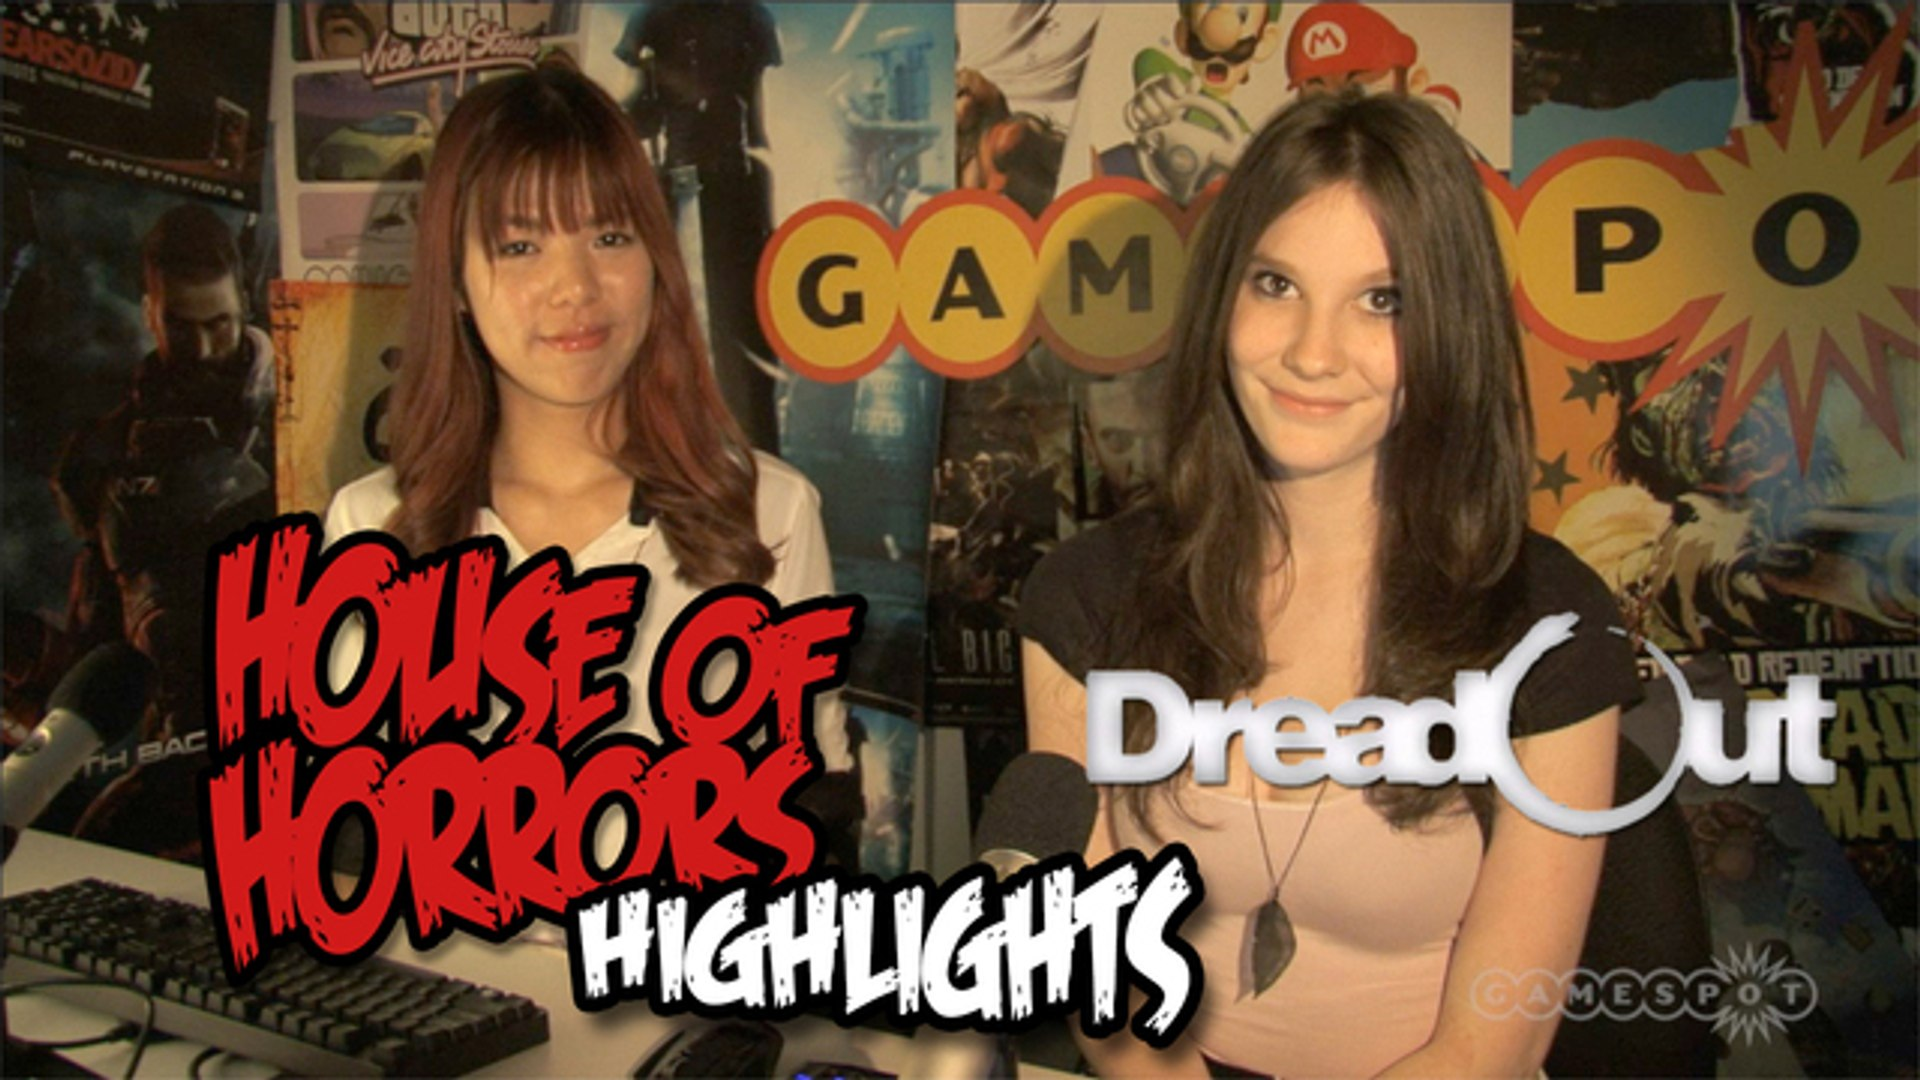 The Ultimate Horror Game and ManBearPig in DreadOut - House of Horrors